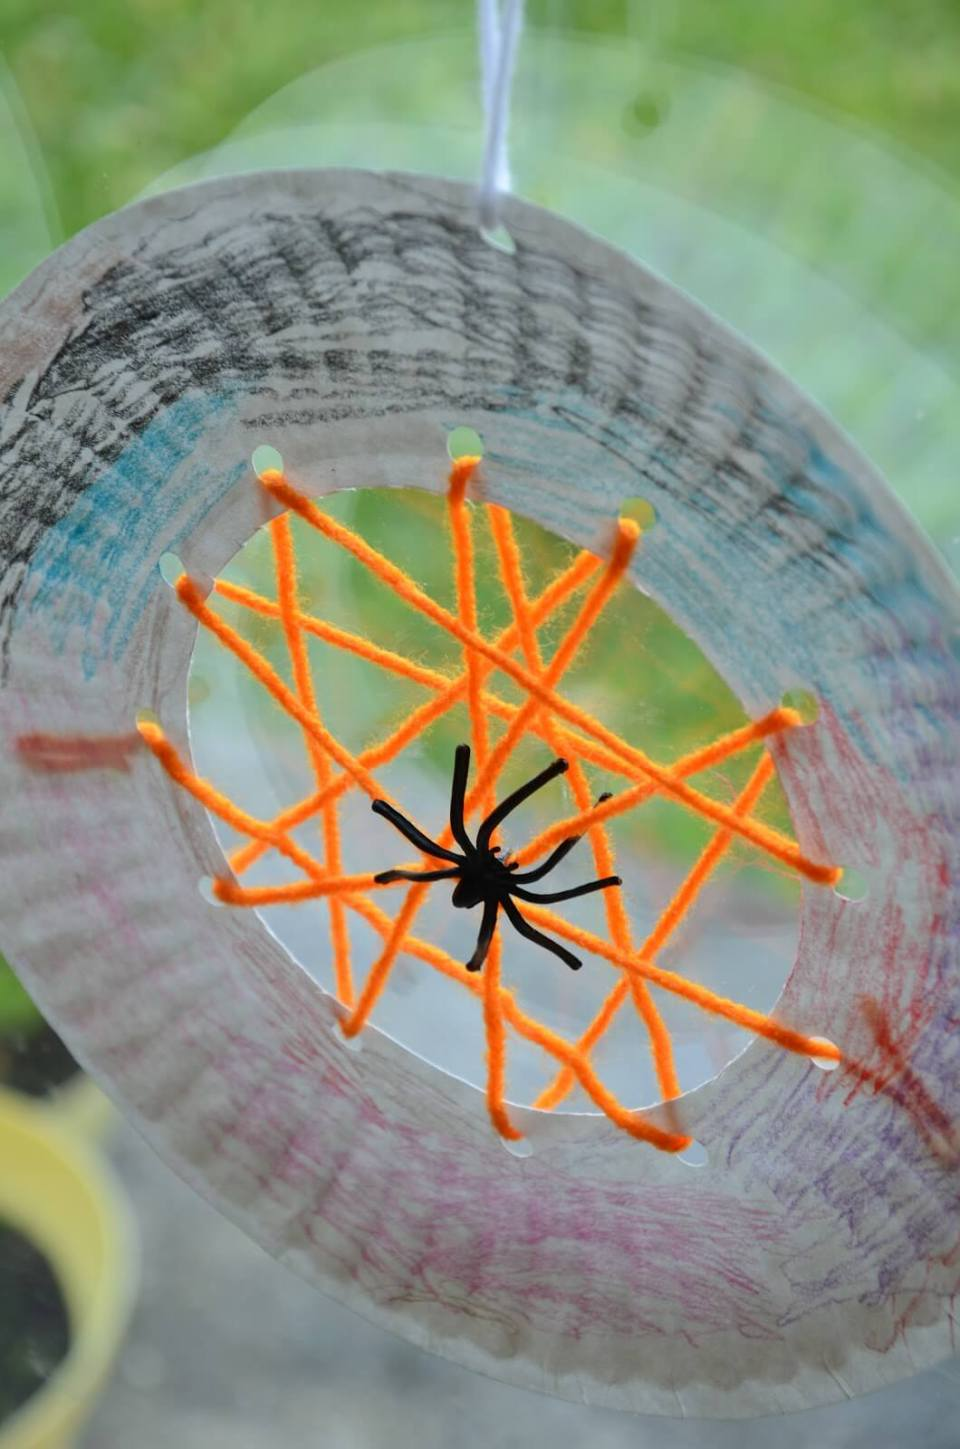 Paper Plate Spider Web Activity | Fun & Creative DIY Halloween Crafts for Kids